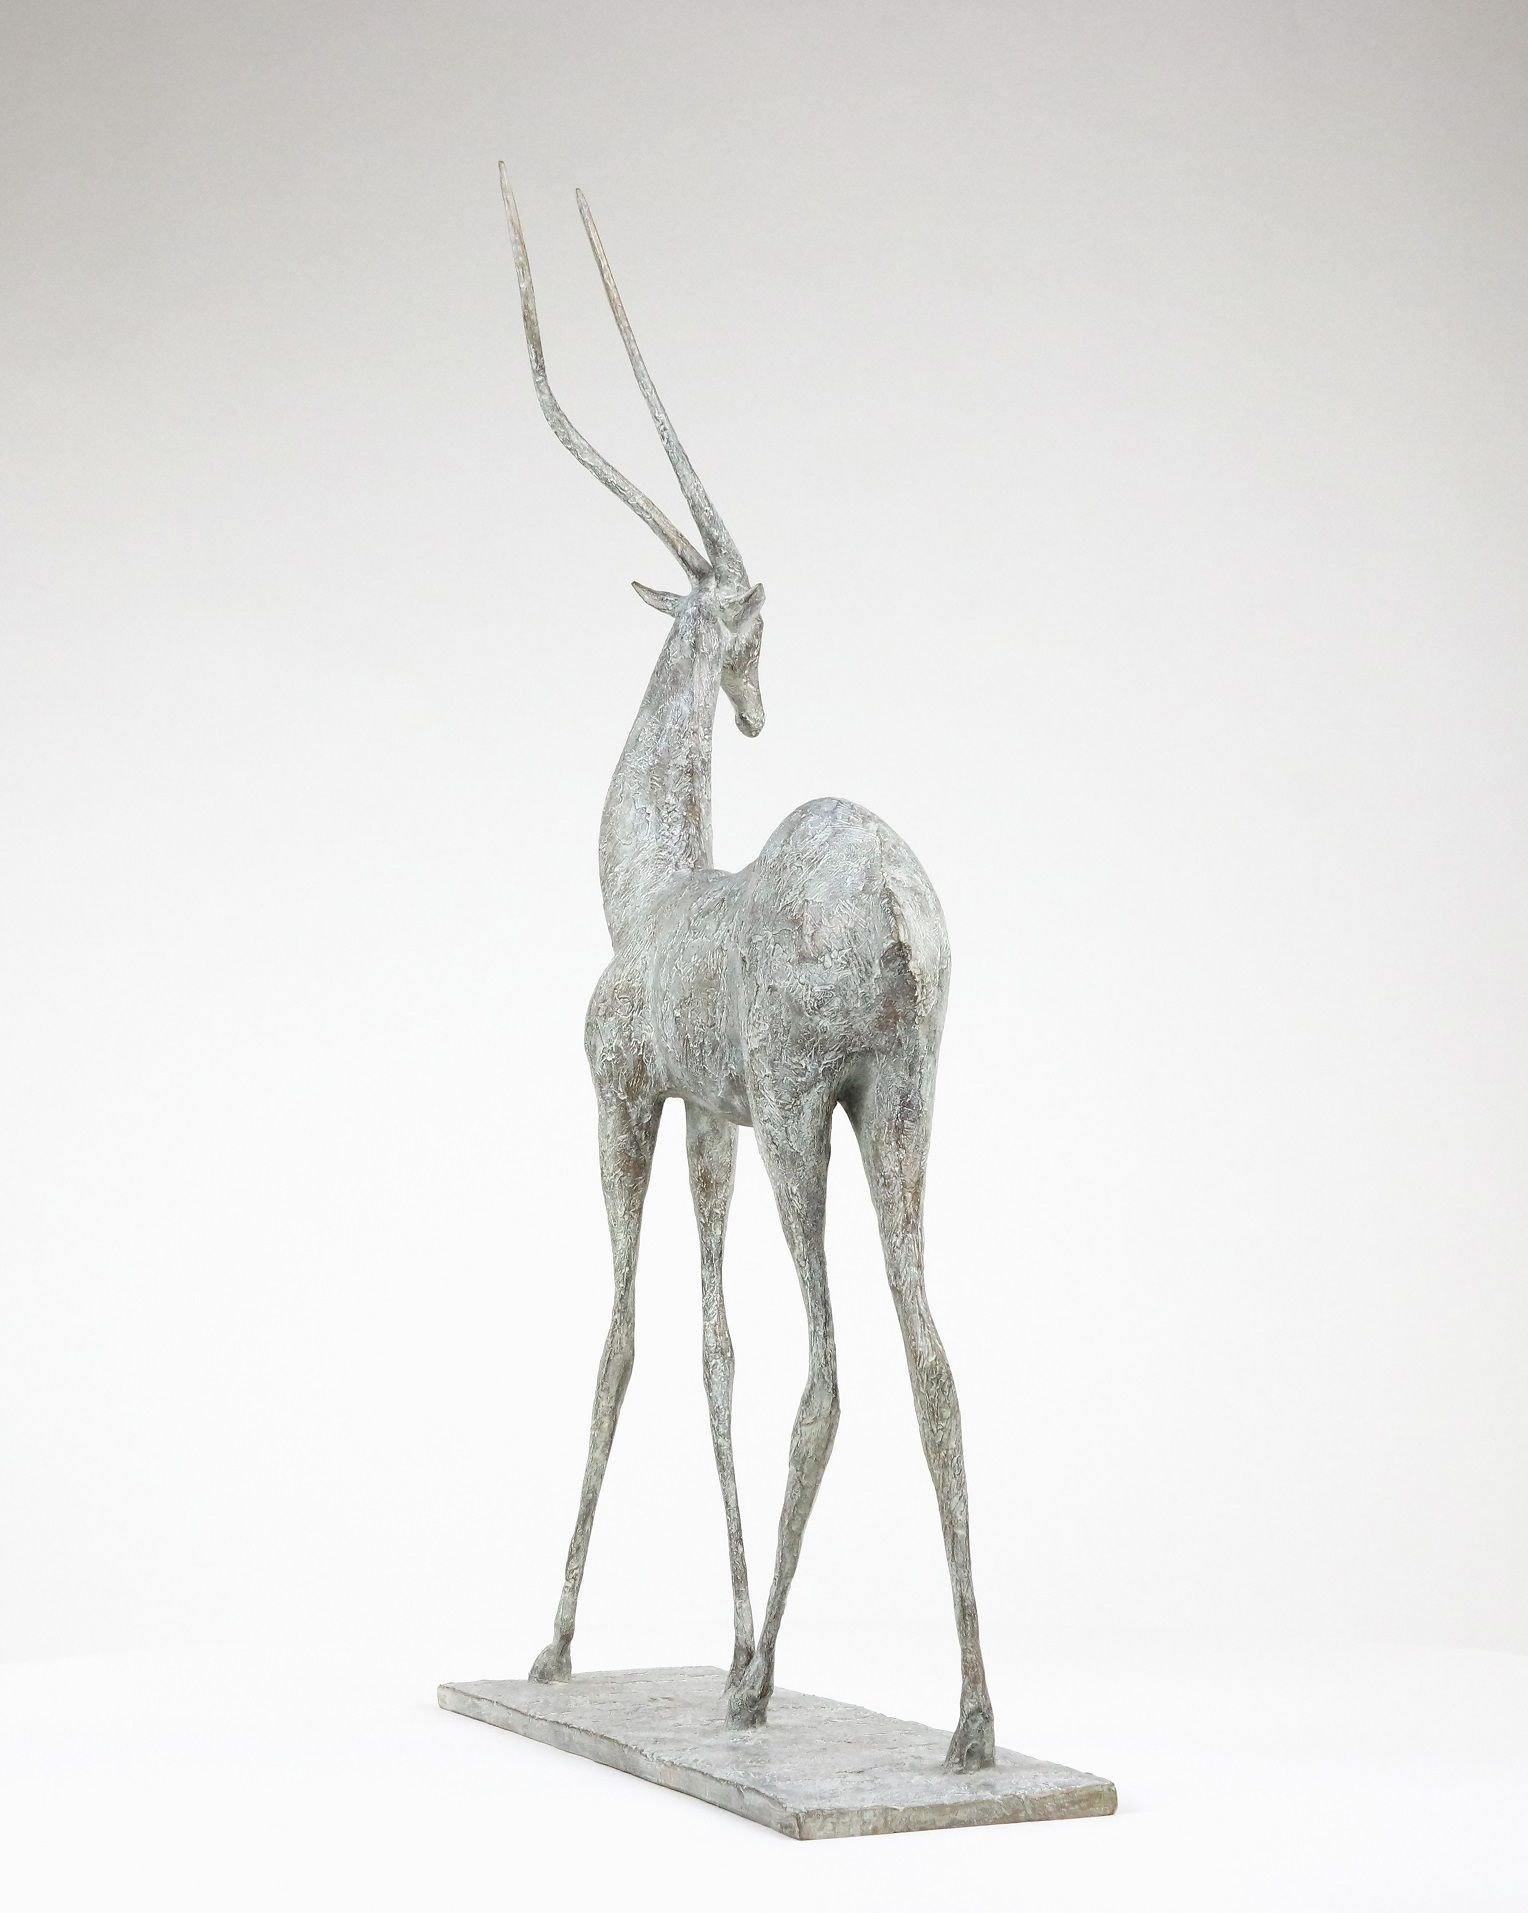 Gazelle I, Pierre Yermia,Sculpture contemporaine, detail 2